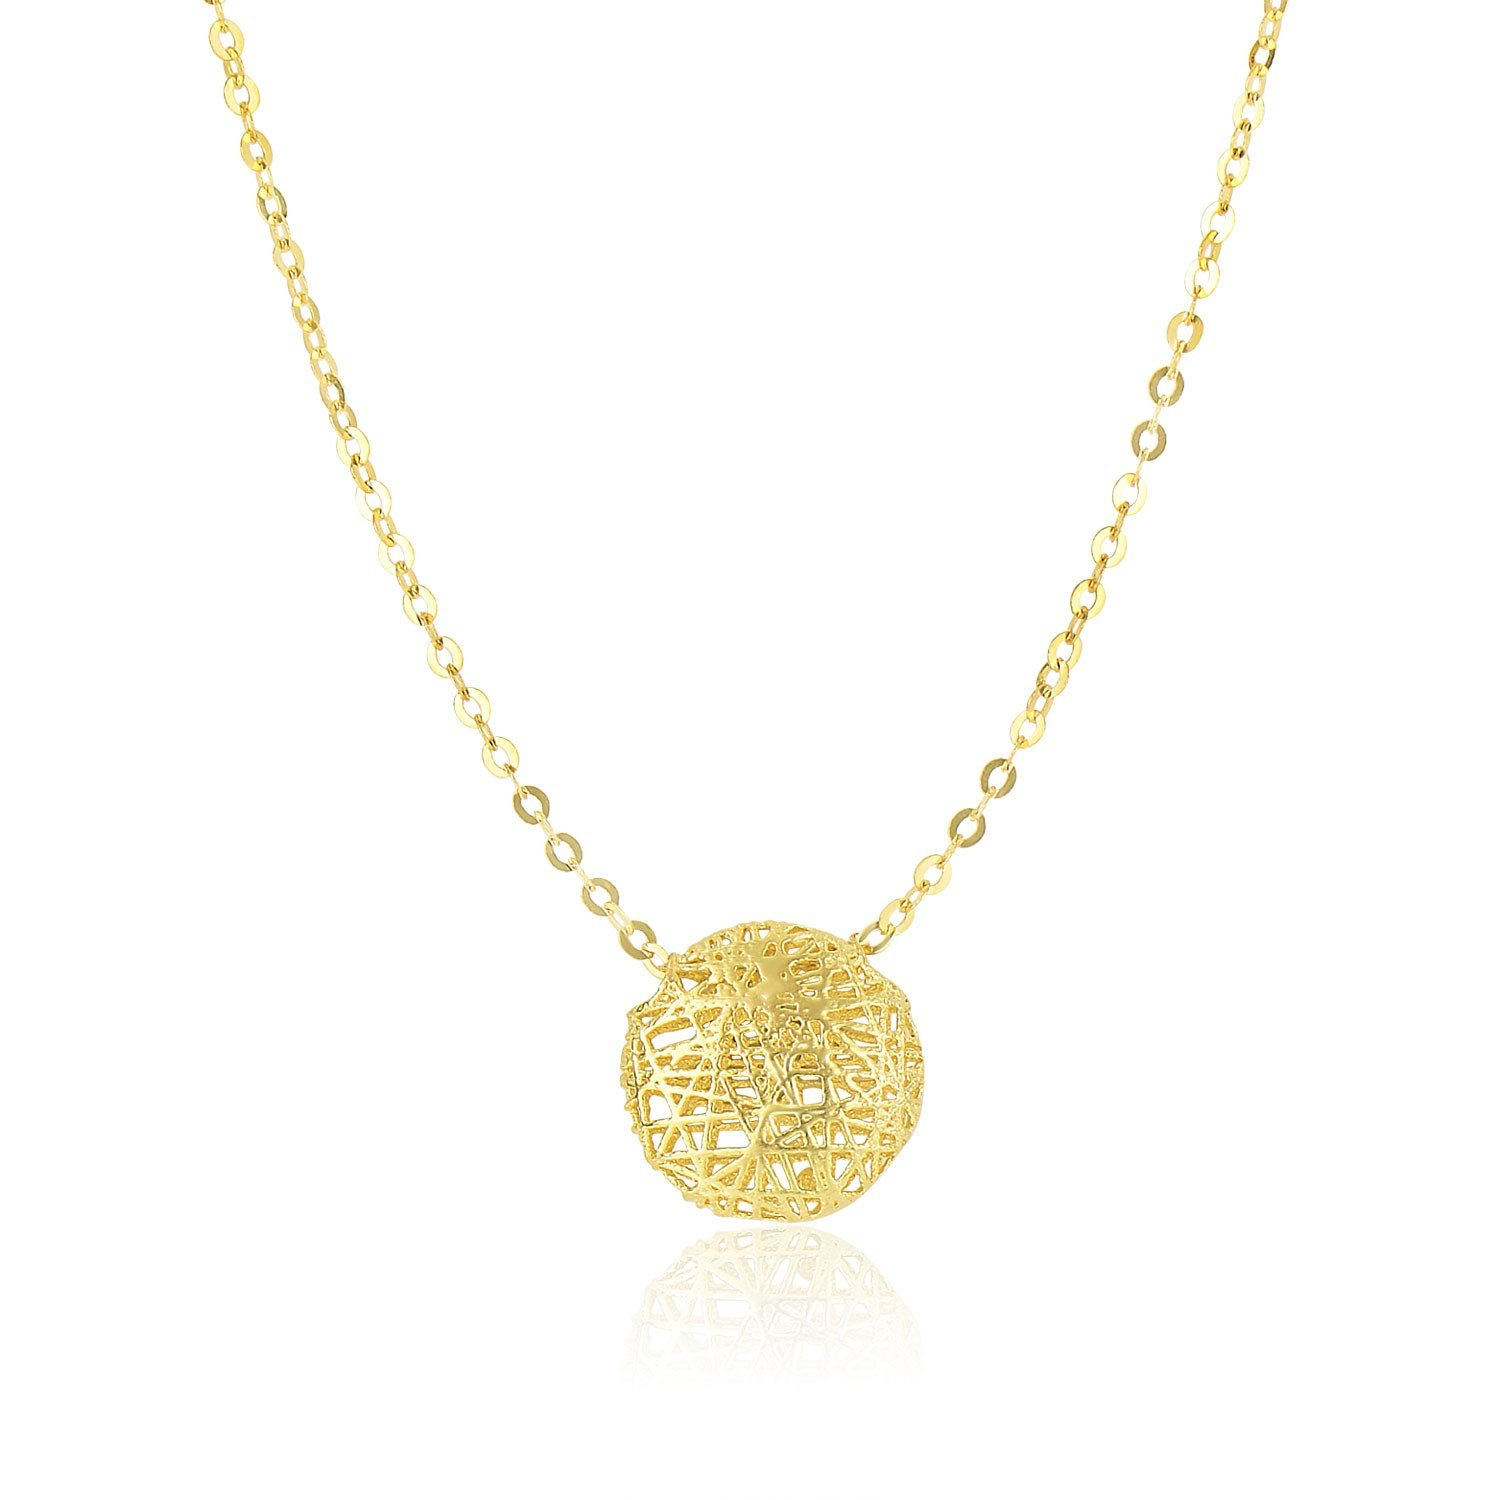 14K Yellow Gold Mesh Style Puffed Round Necklace by Jewels By Lux